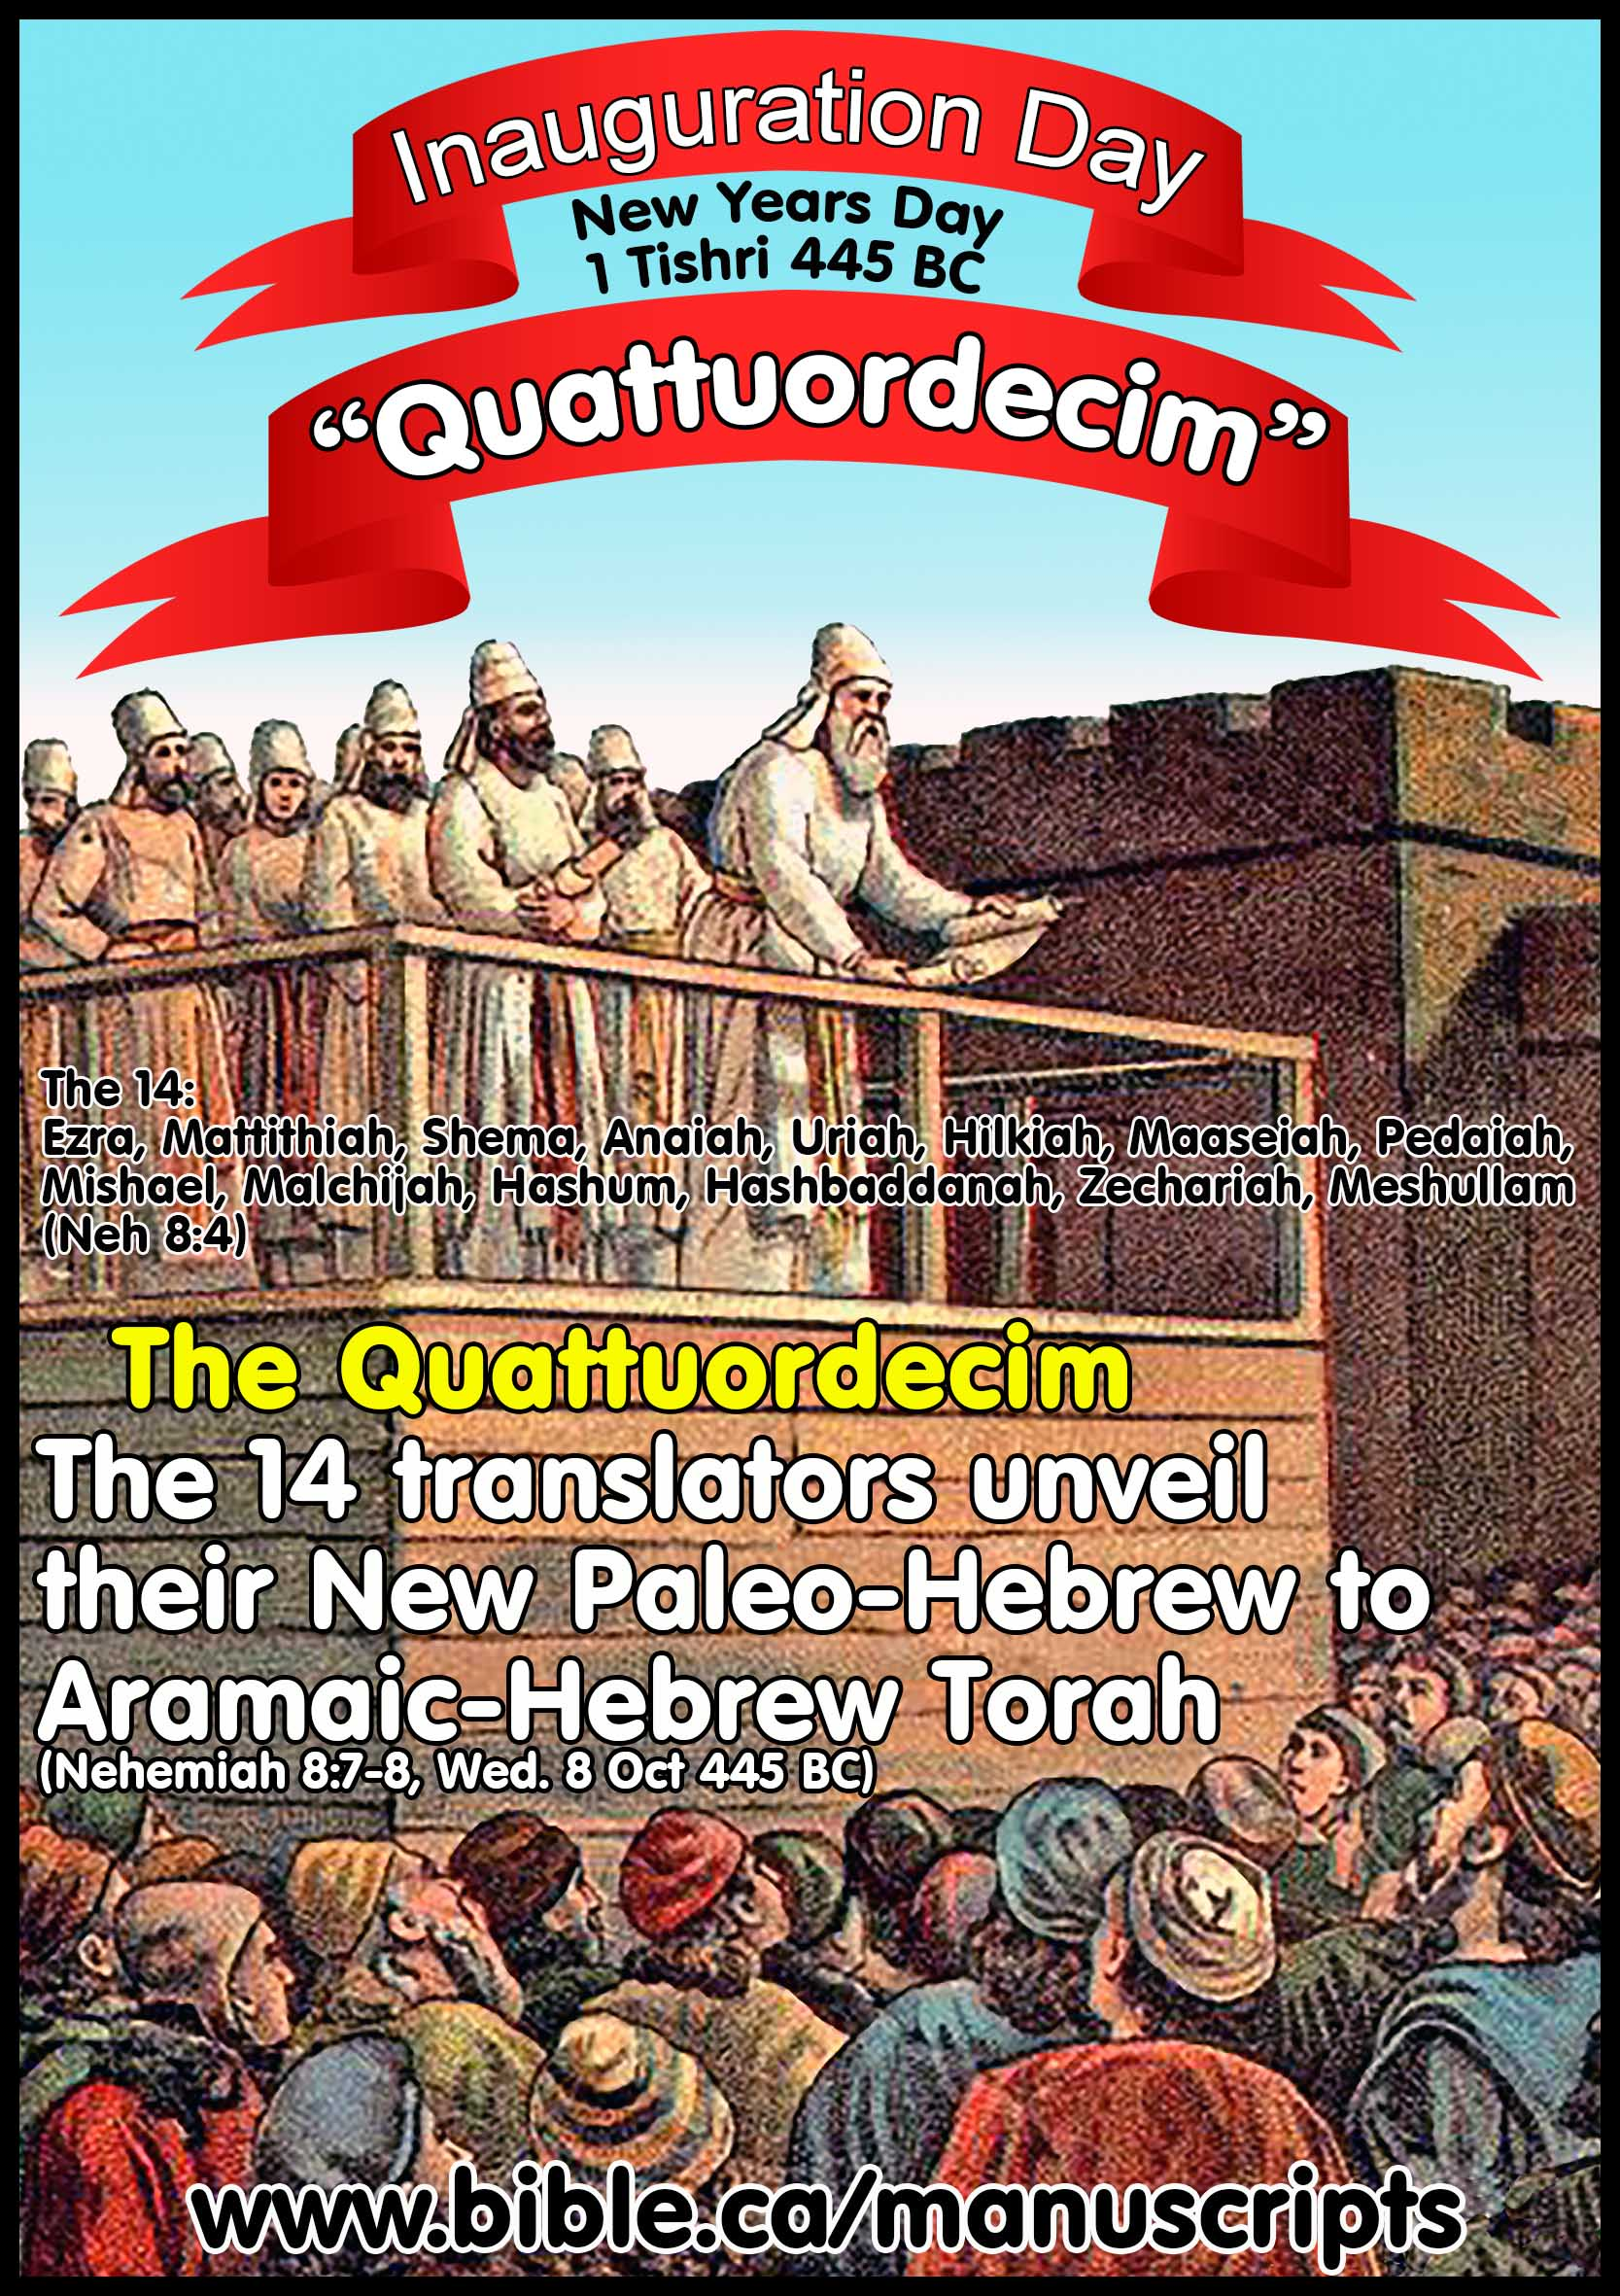 Quattuordecim (XIV): Ezra Translated the Paleo-Hebrew